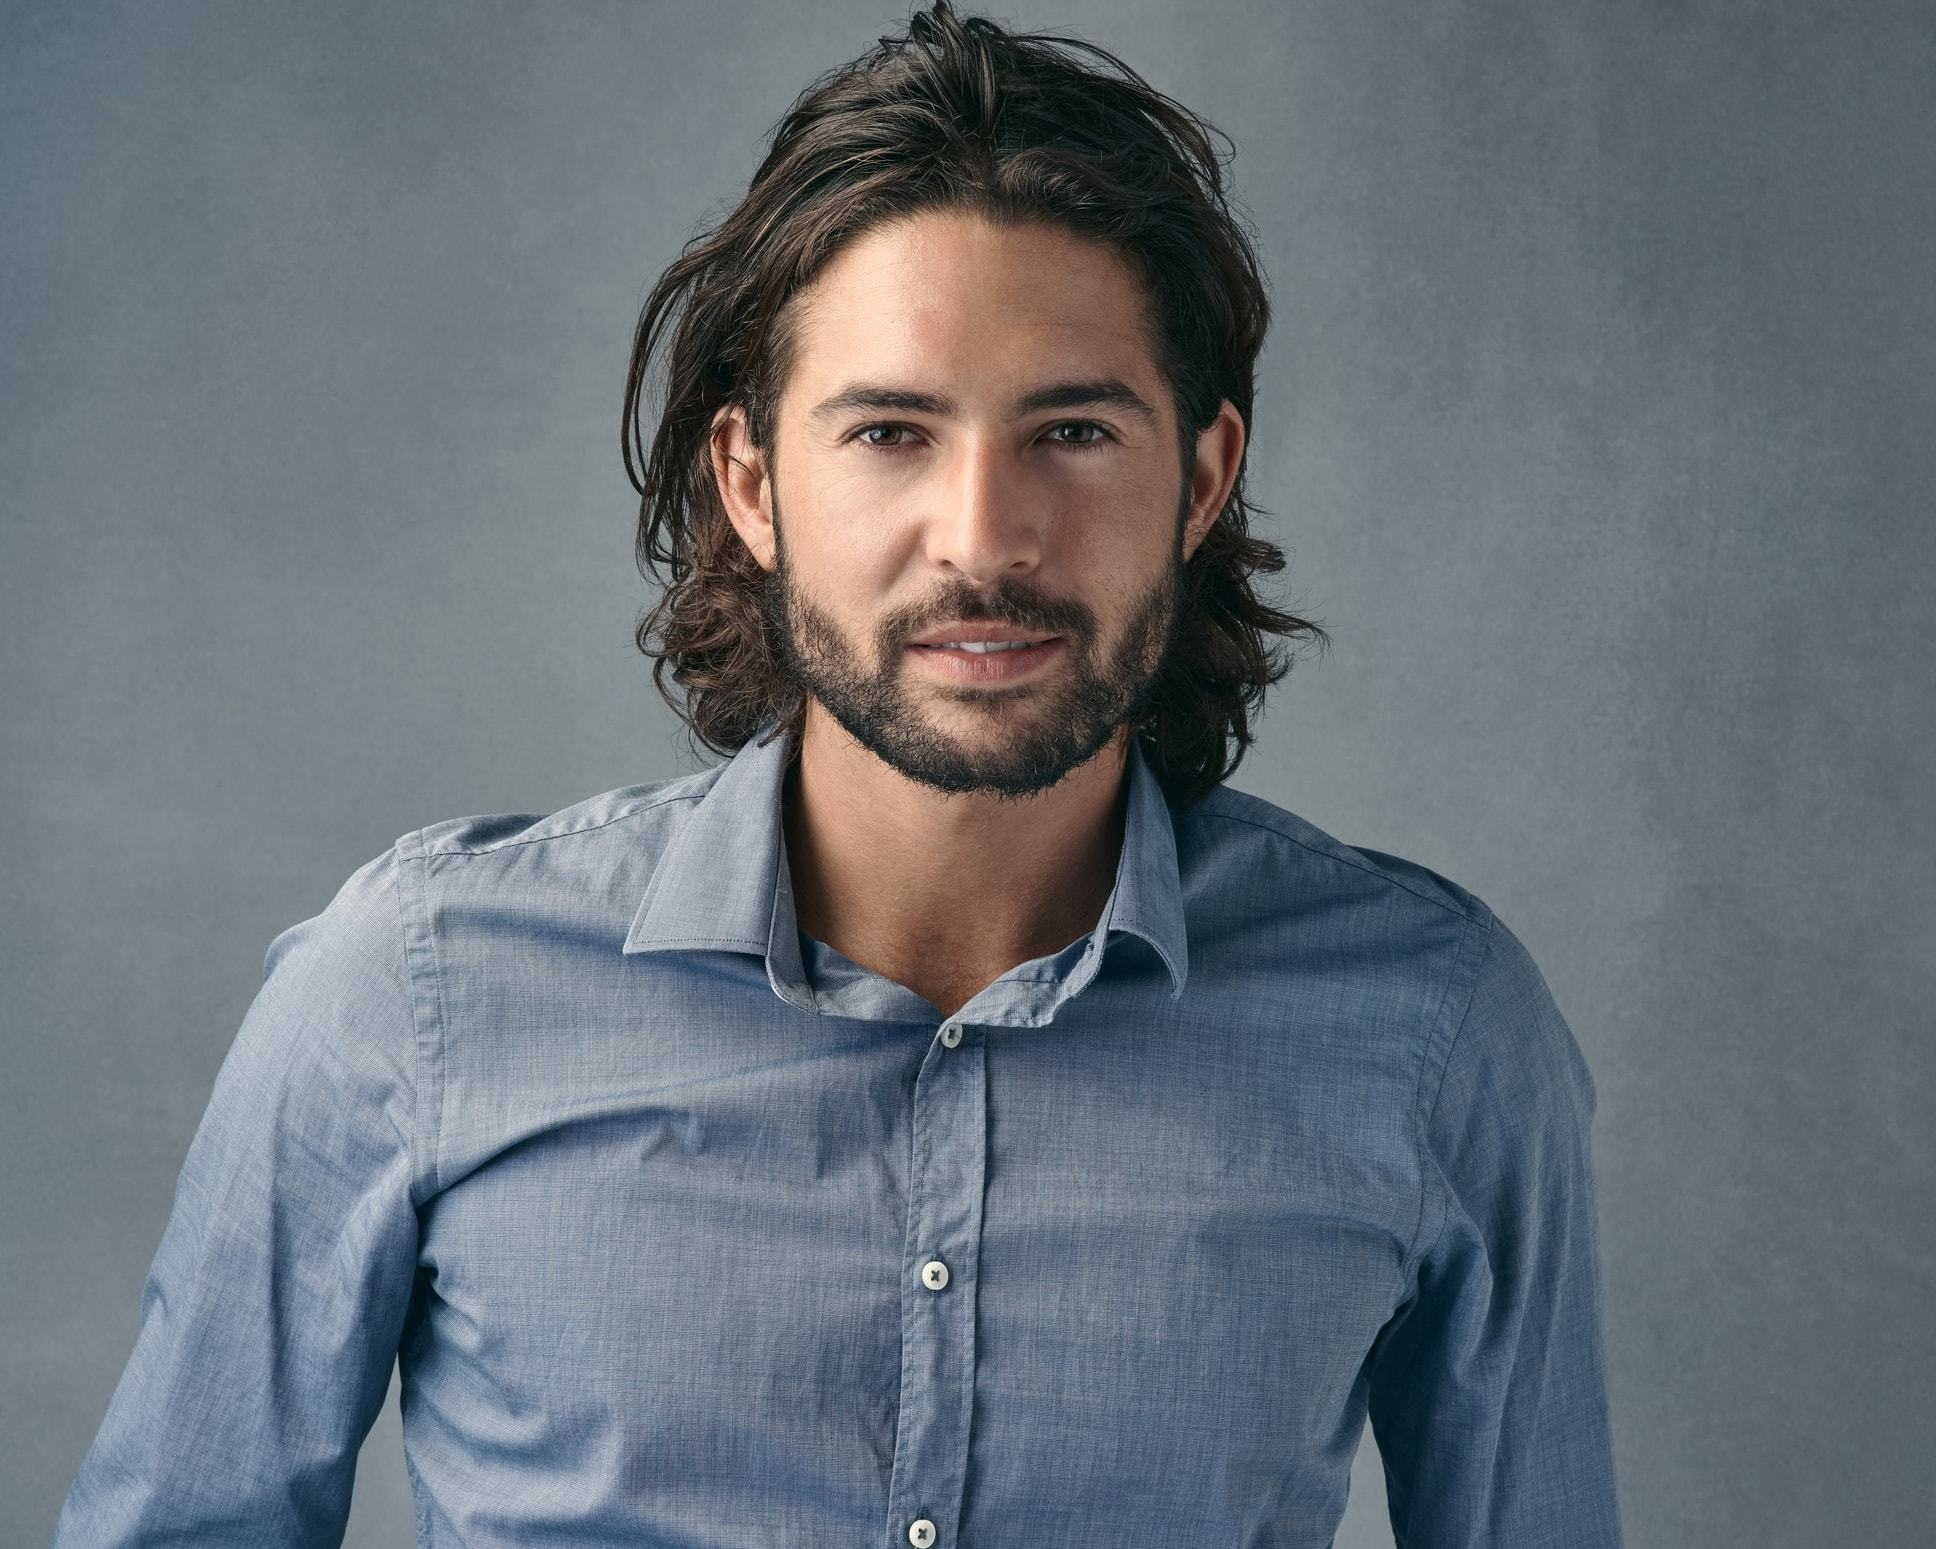 Long Hairstyles for Men with Thick Hair